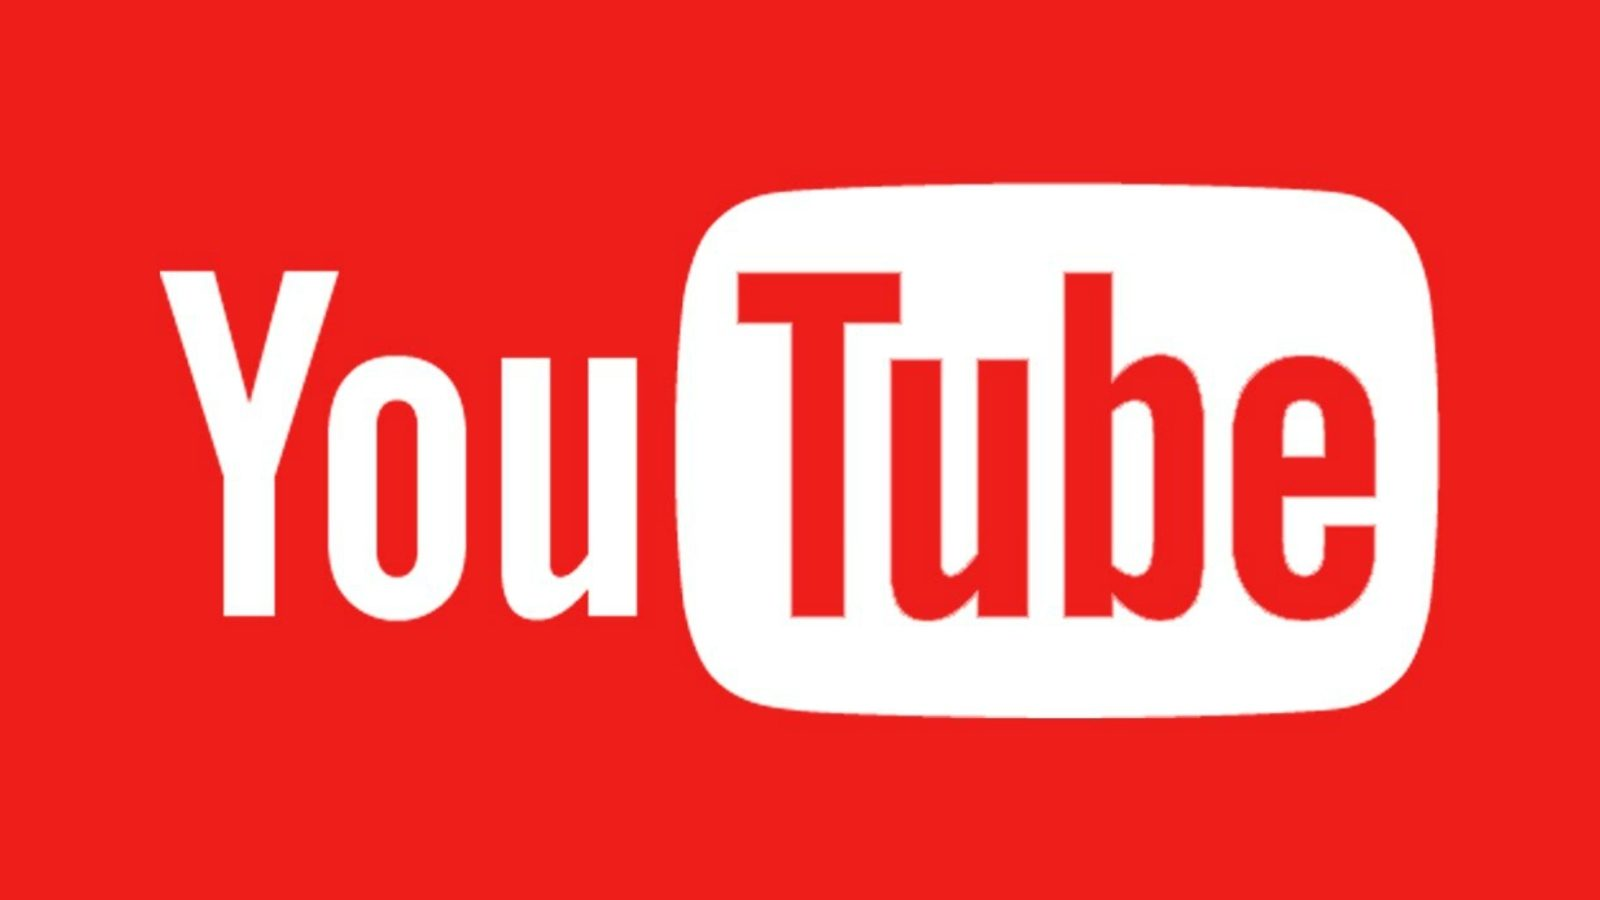 YouTube Experiences Worldwide Site Crash | The Source